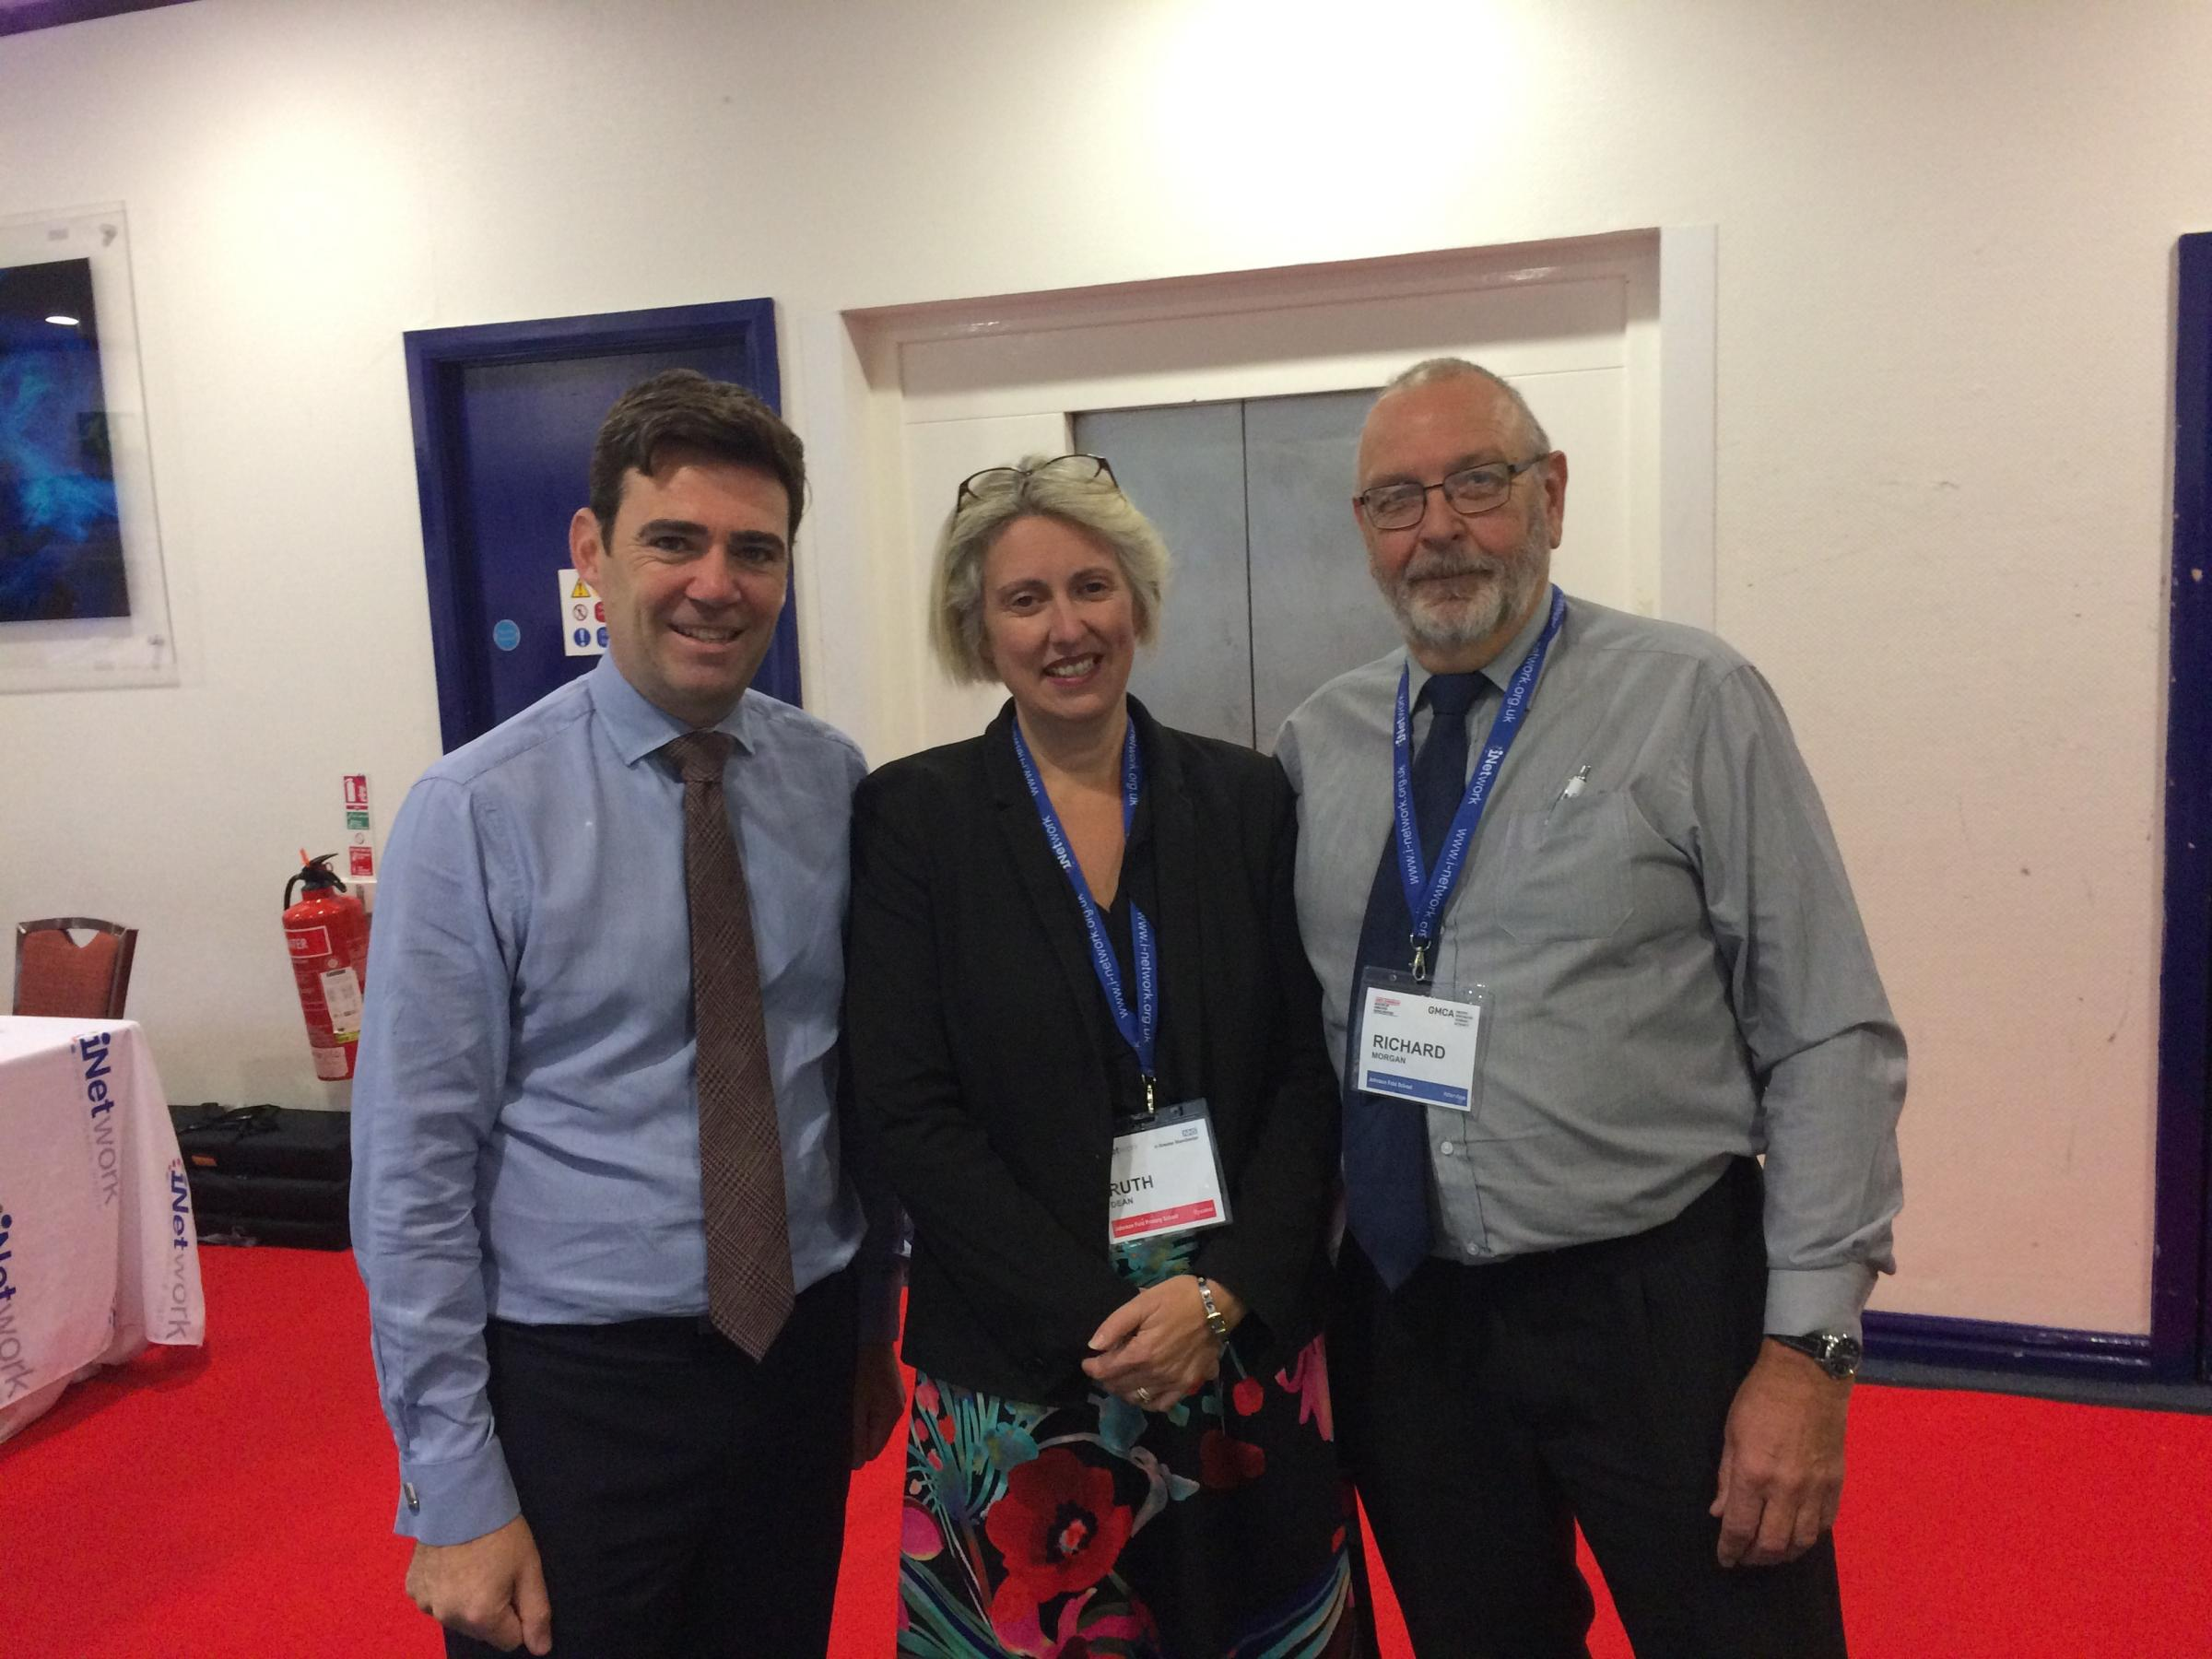 WORKING TOGETHER: Andy Burnham, Ruth Dean and Richard Morgan